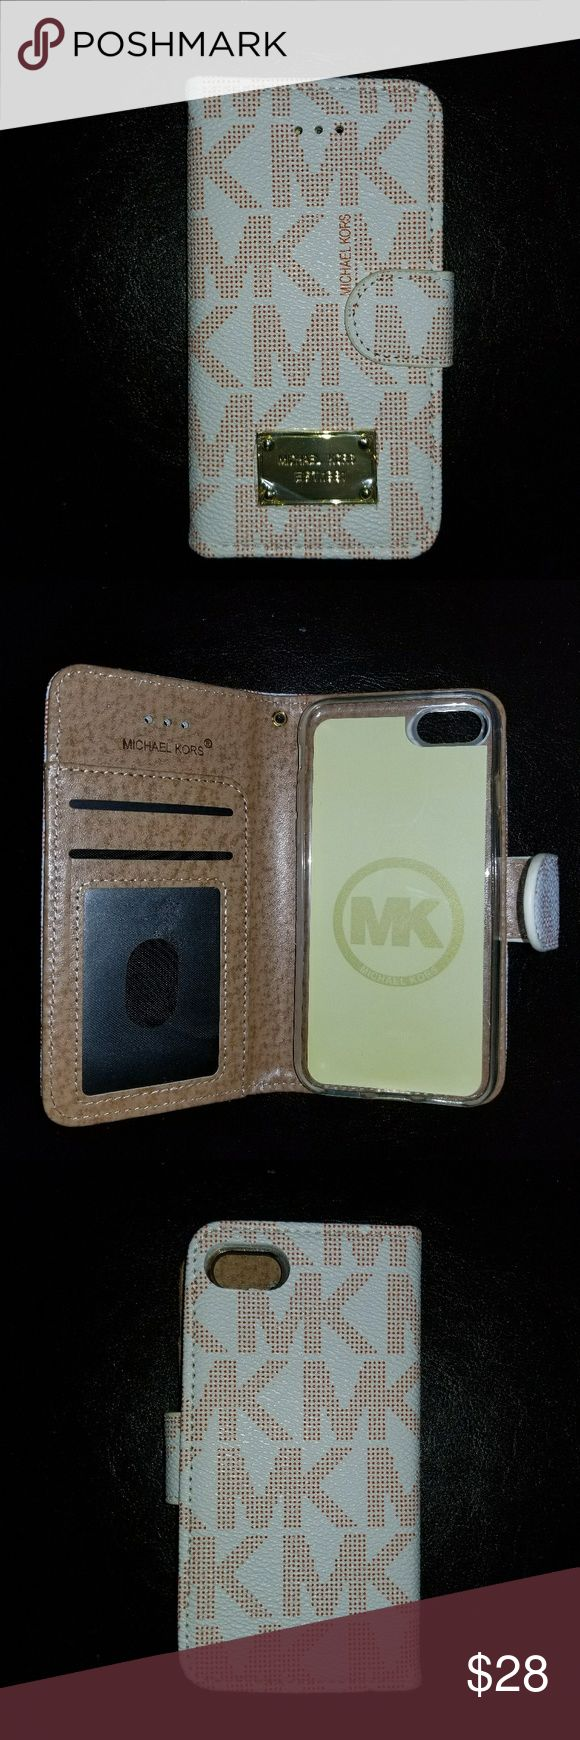 New MK Case Wallet for iPhone 7 Flip Case Wallet, has room for cards and cash. Turns into a stand too. Has a stunning bling magnetic clasp that keeps the case closed  Easy access to control ports, cameras and buttons Protect your cell phone from damage scratches, shock Luxury case Michael Kors Accessories Phone Cases